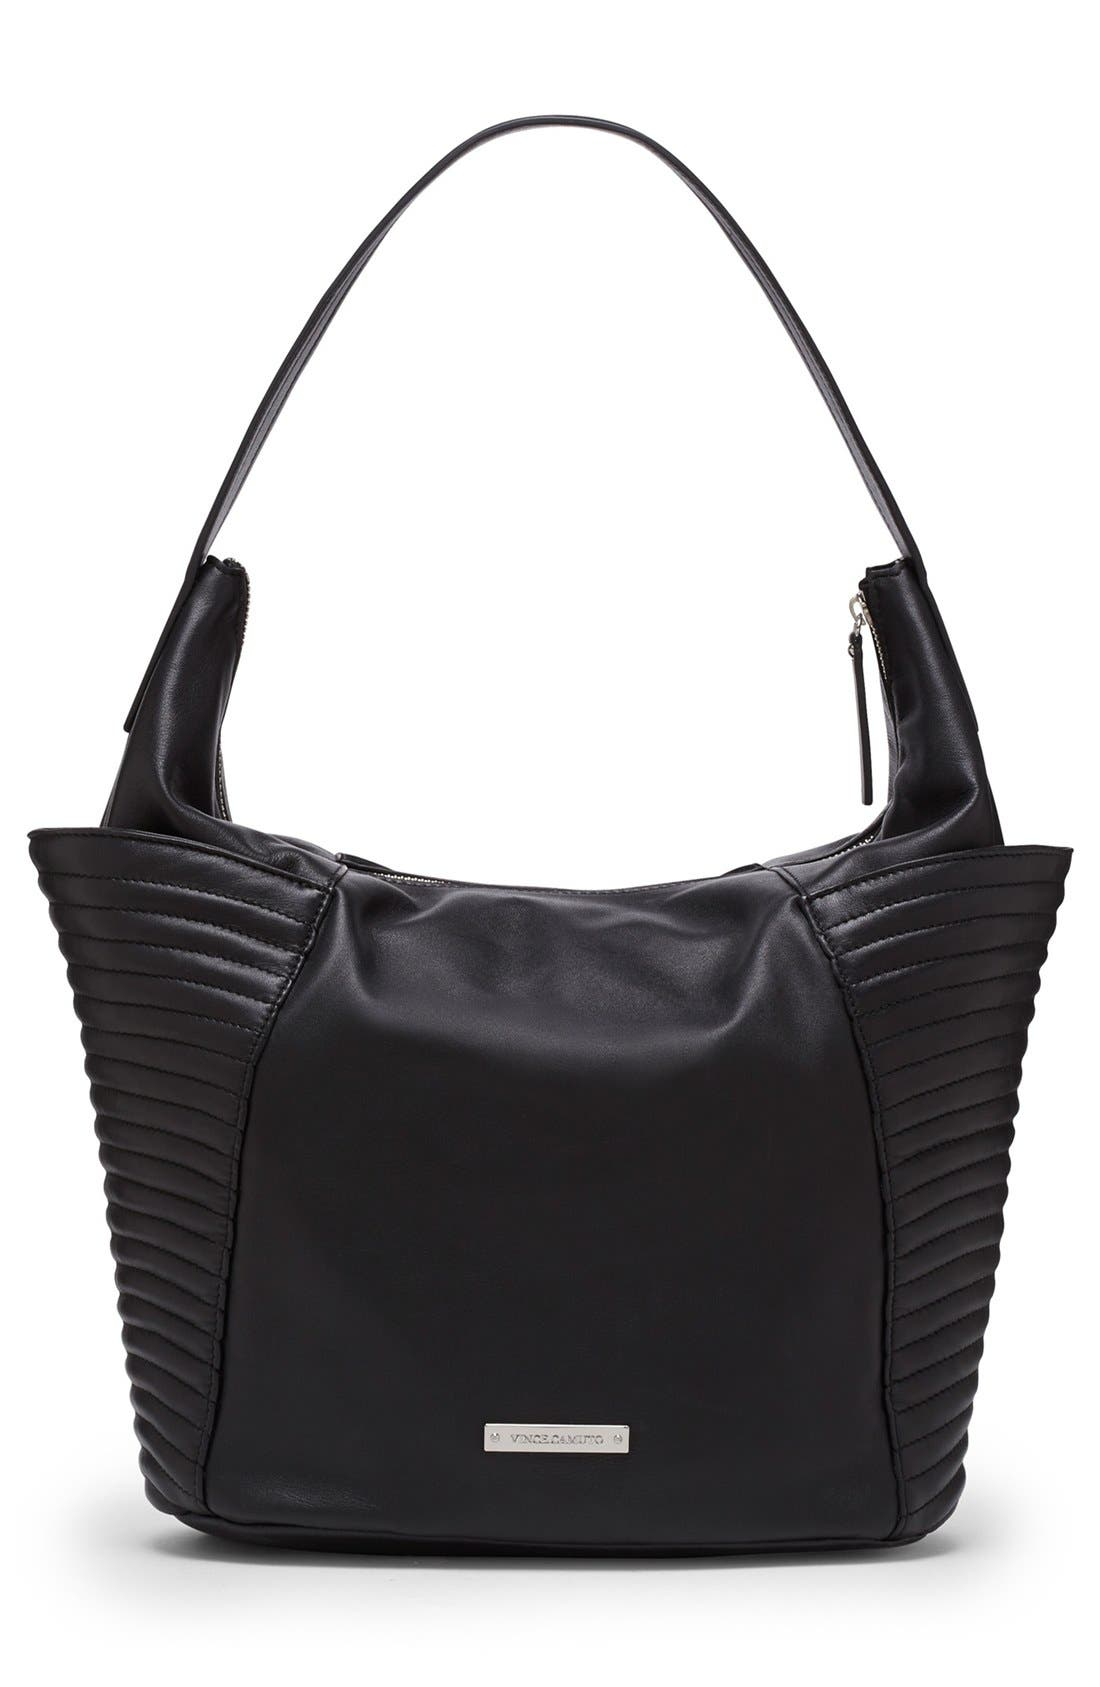 Alternate Image 2  - Vince Camuto 'Baily' Hobo